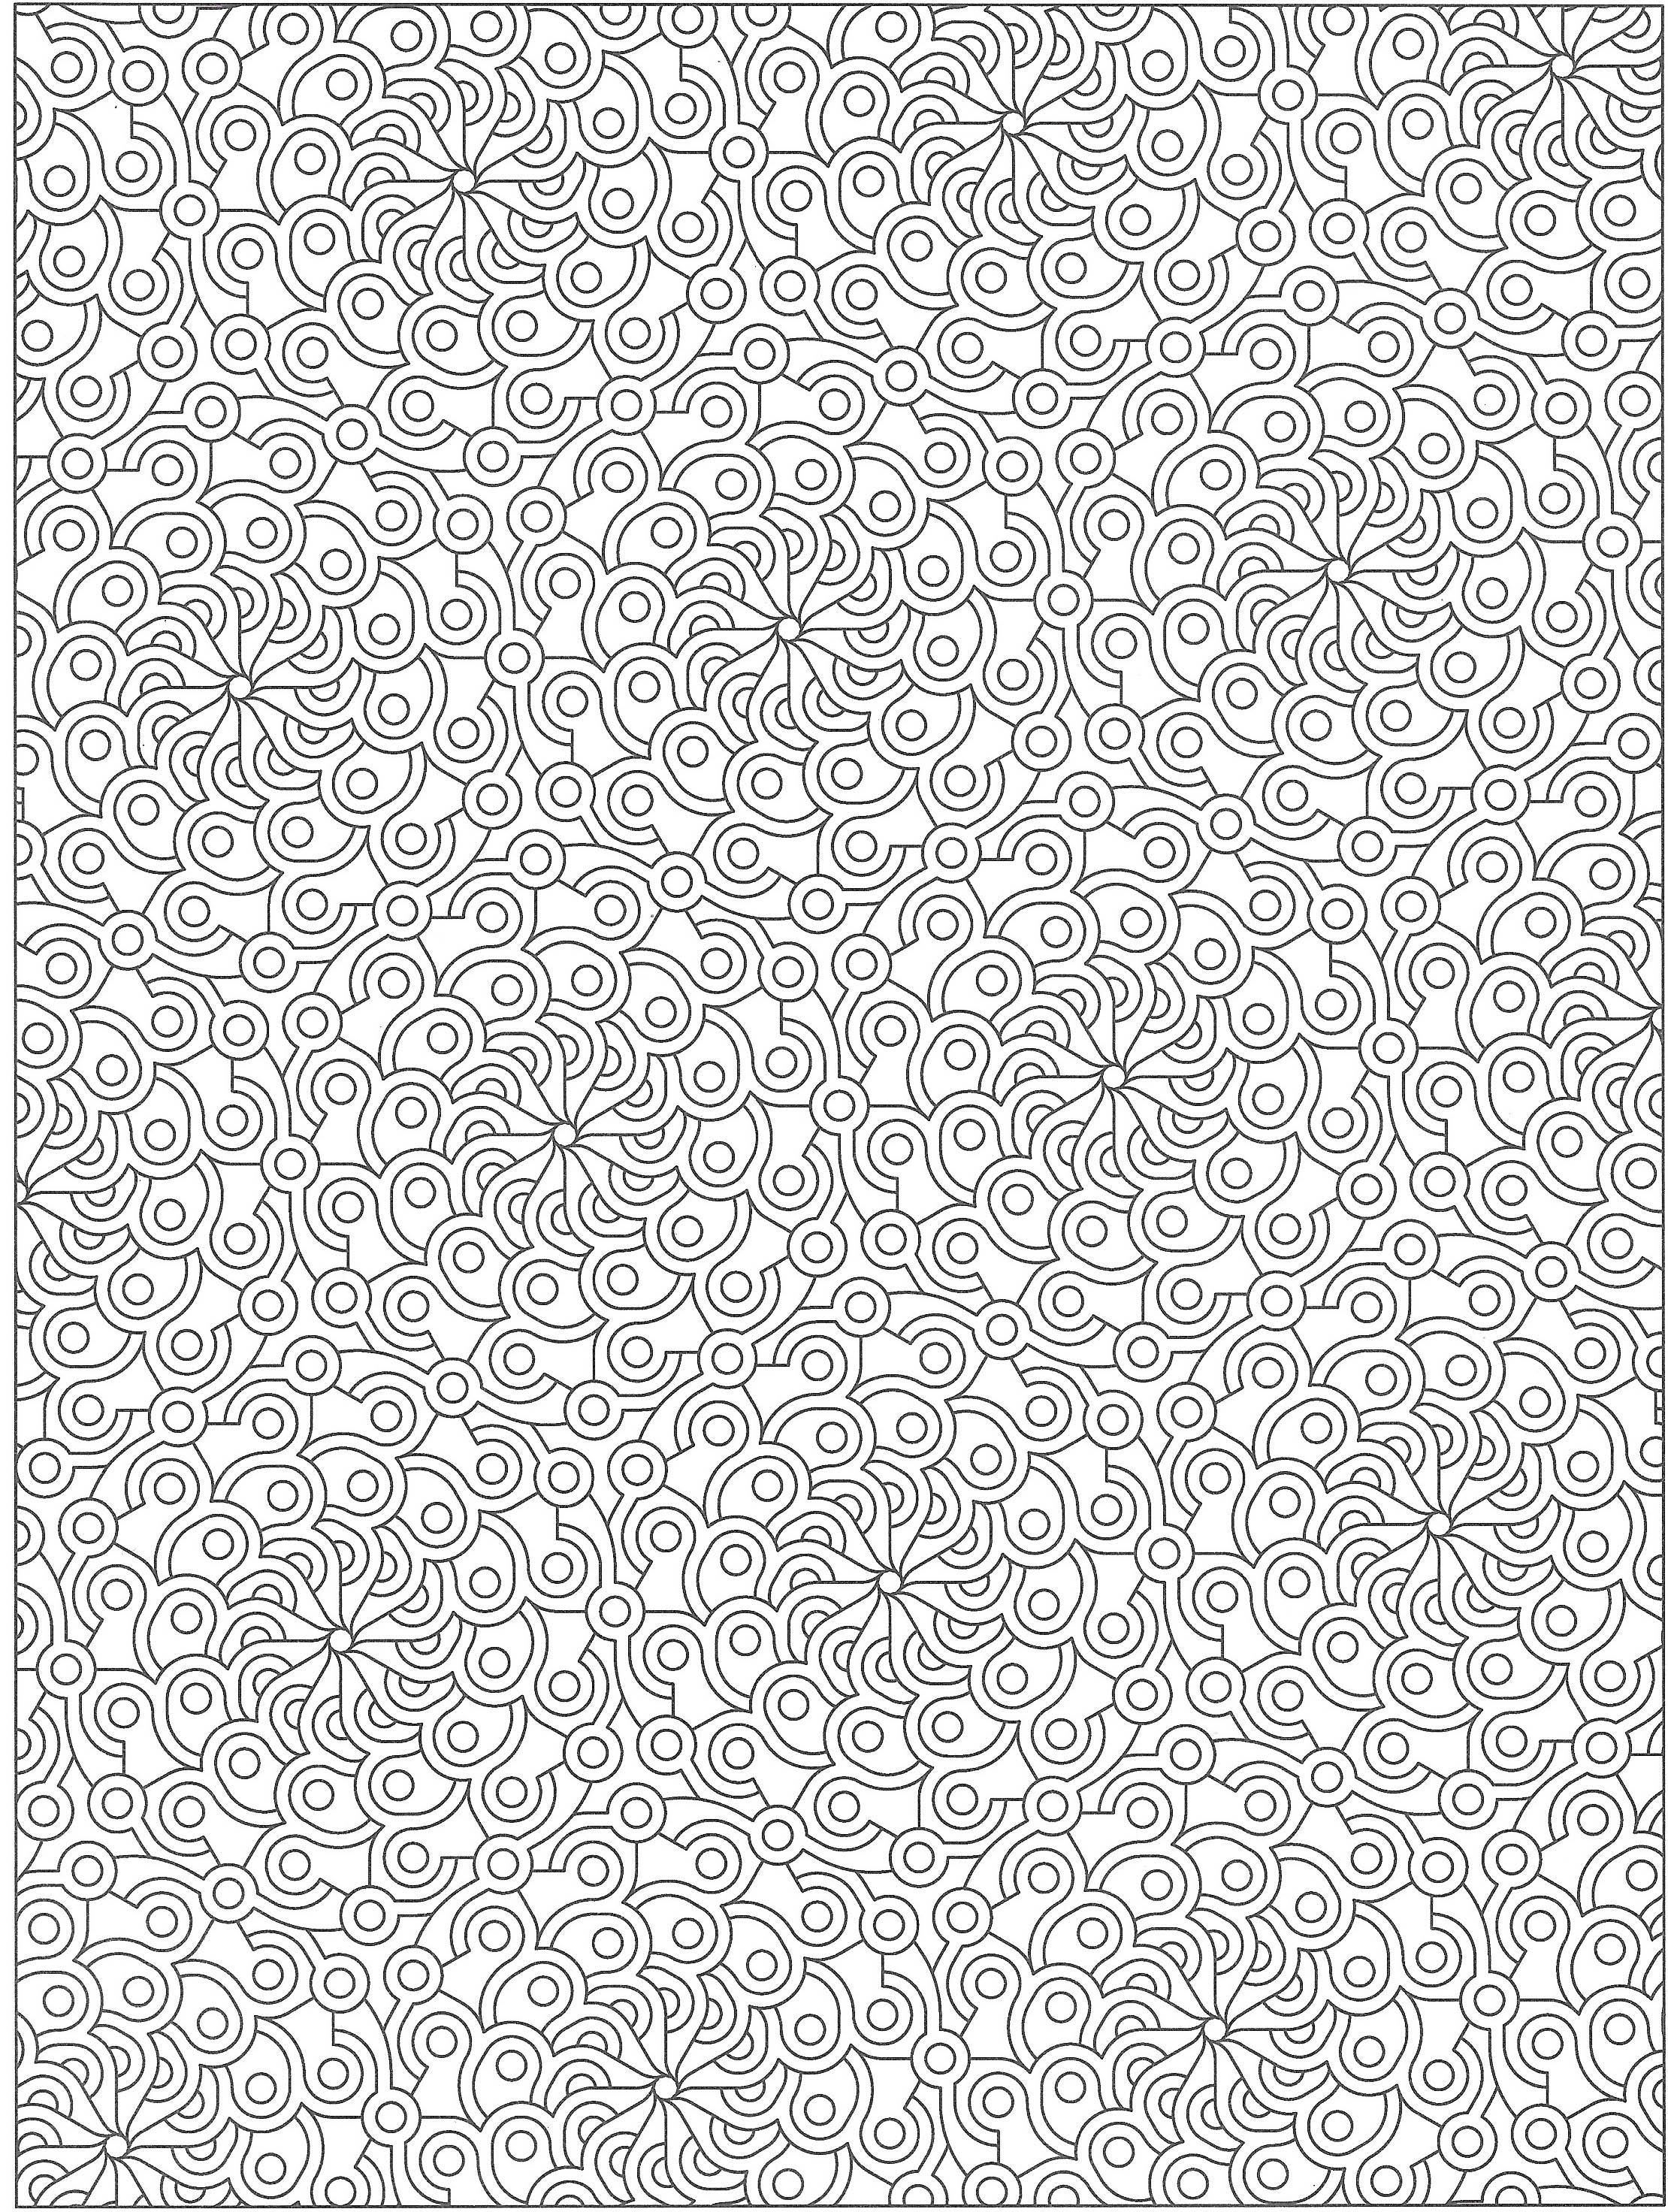 tessellation colouring pages creative haven tessellations coloring page geometric pages colouring tessellation